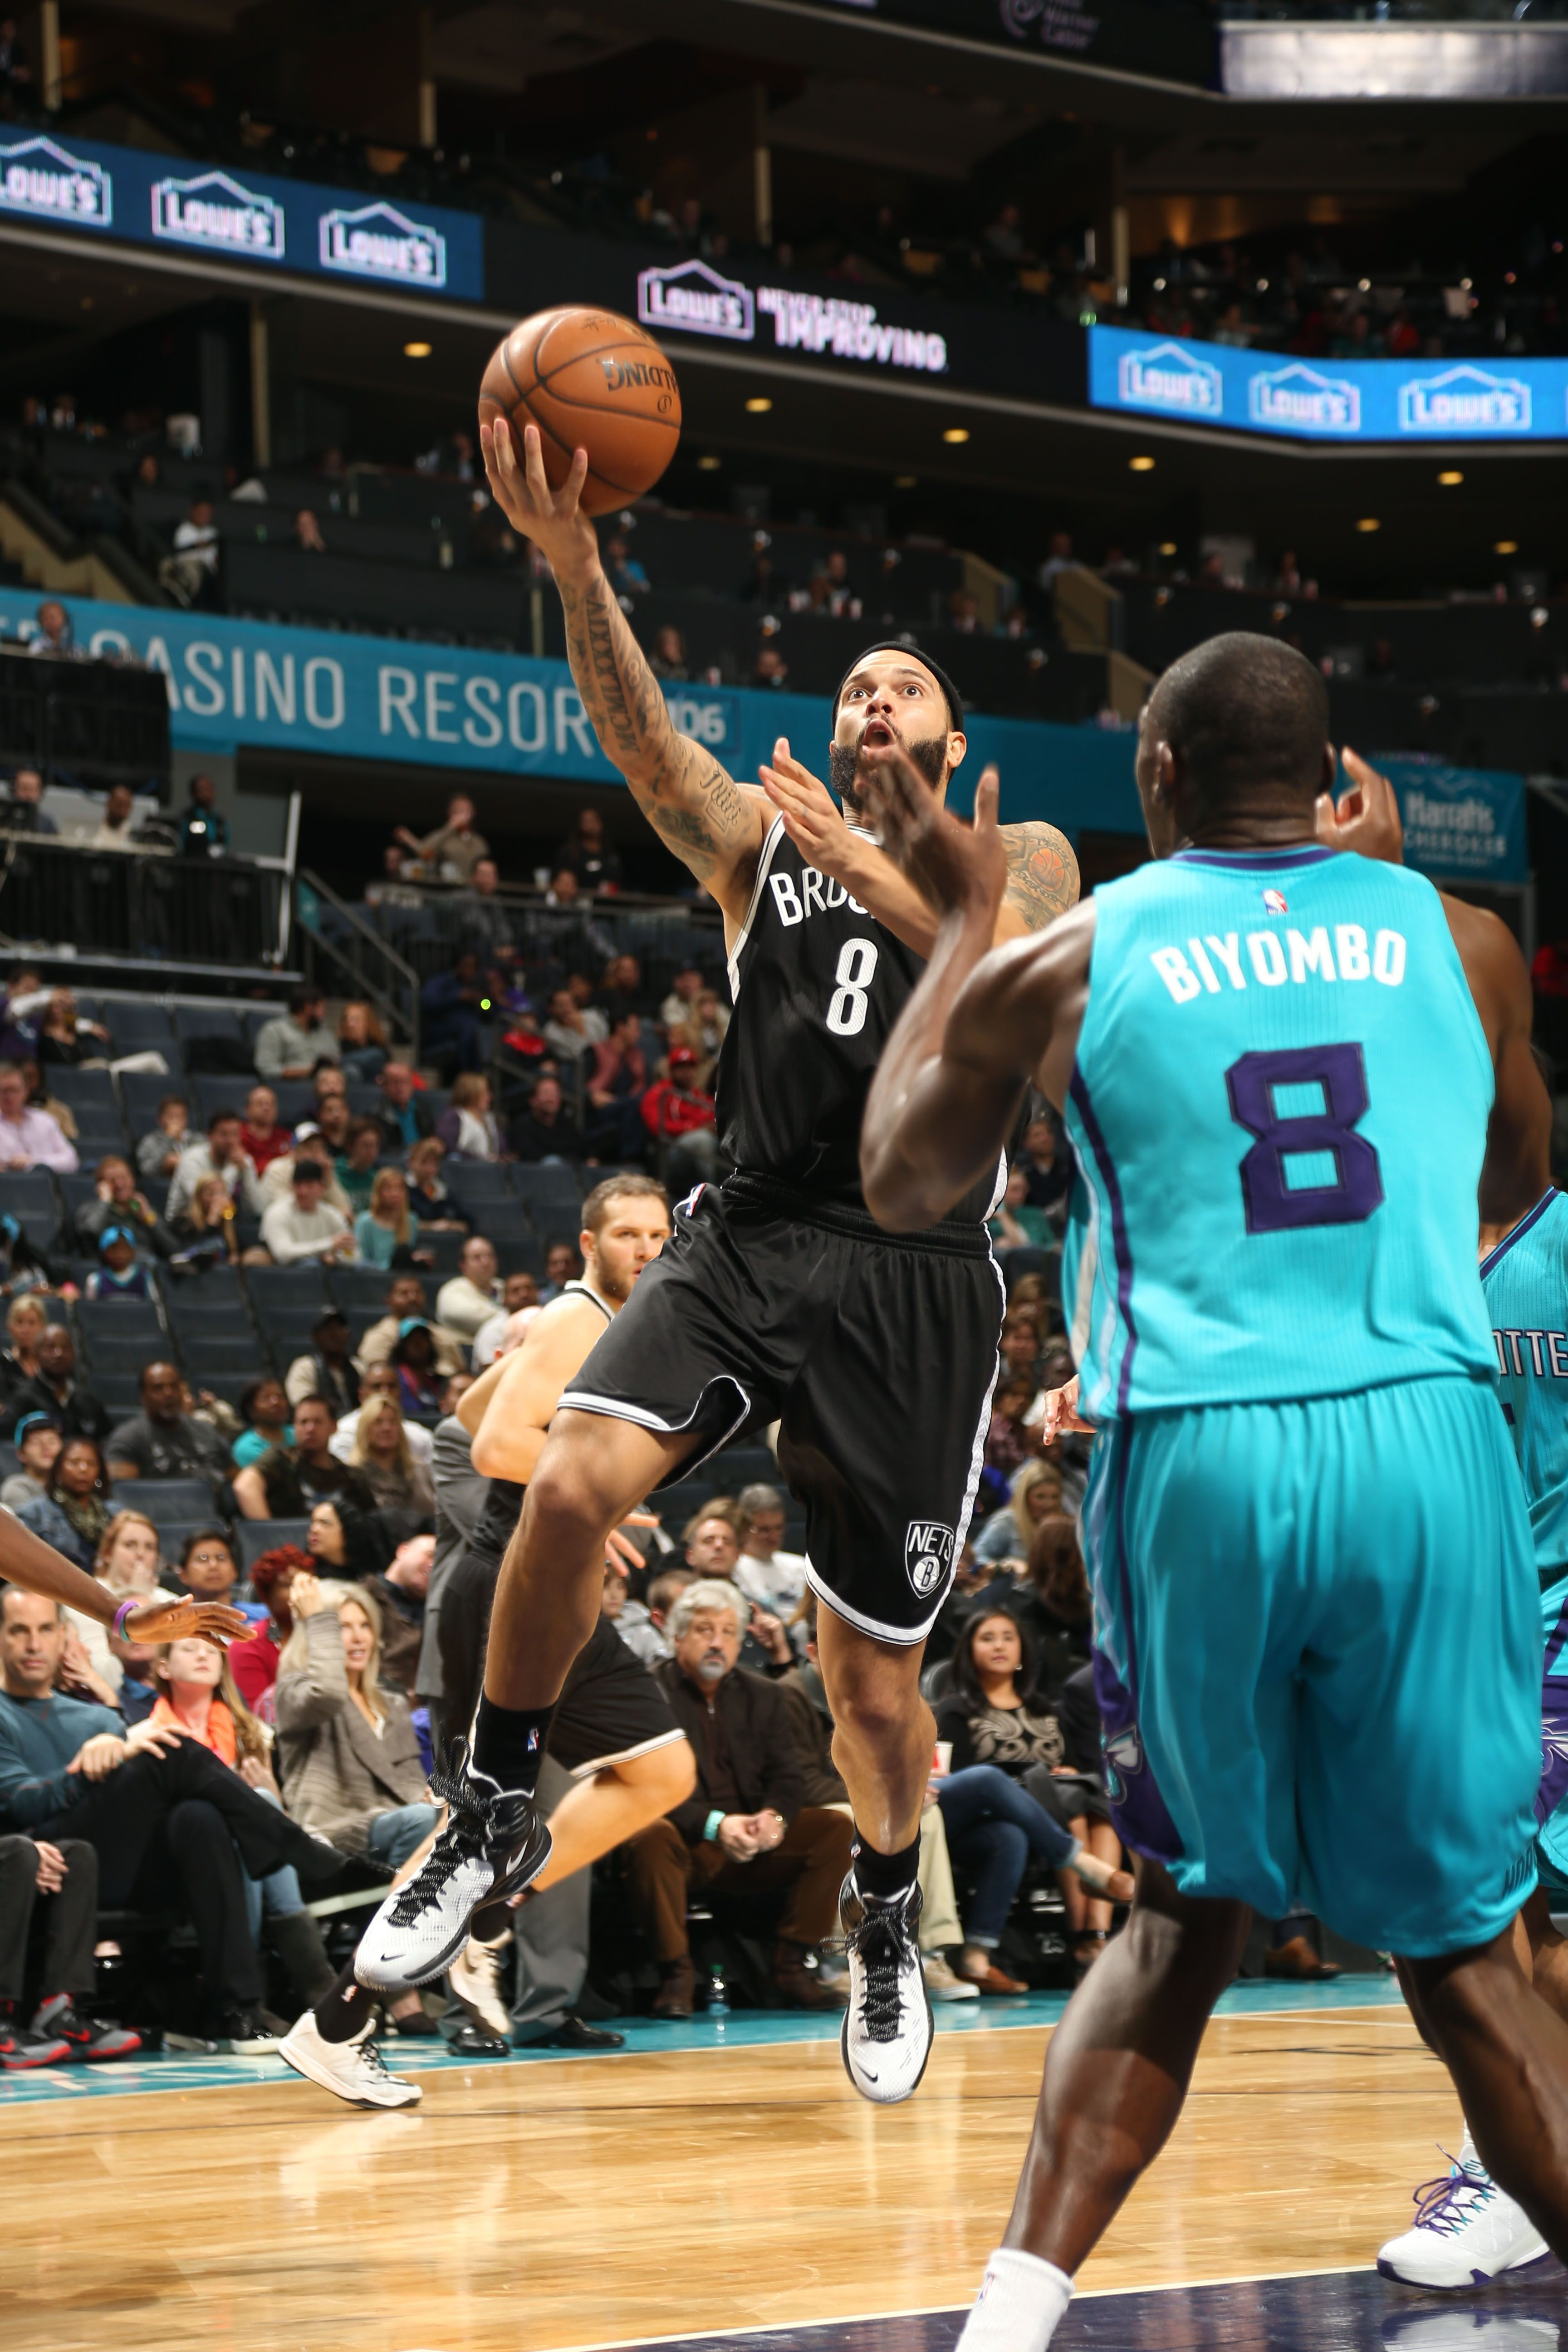 Deron Williams #8 of the Brooklyn Nets goes up for a shot against the Charlotte Hornets at the Time Warner Cable Arena on December 13, 2014 in Charlotte, North Carolina.